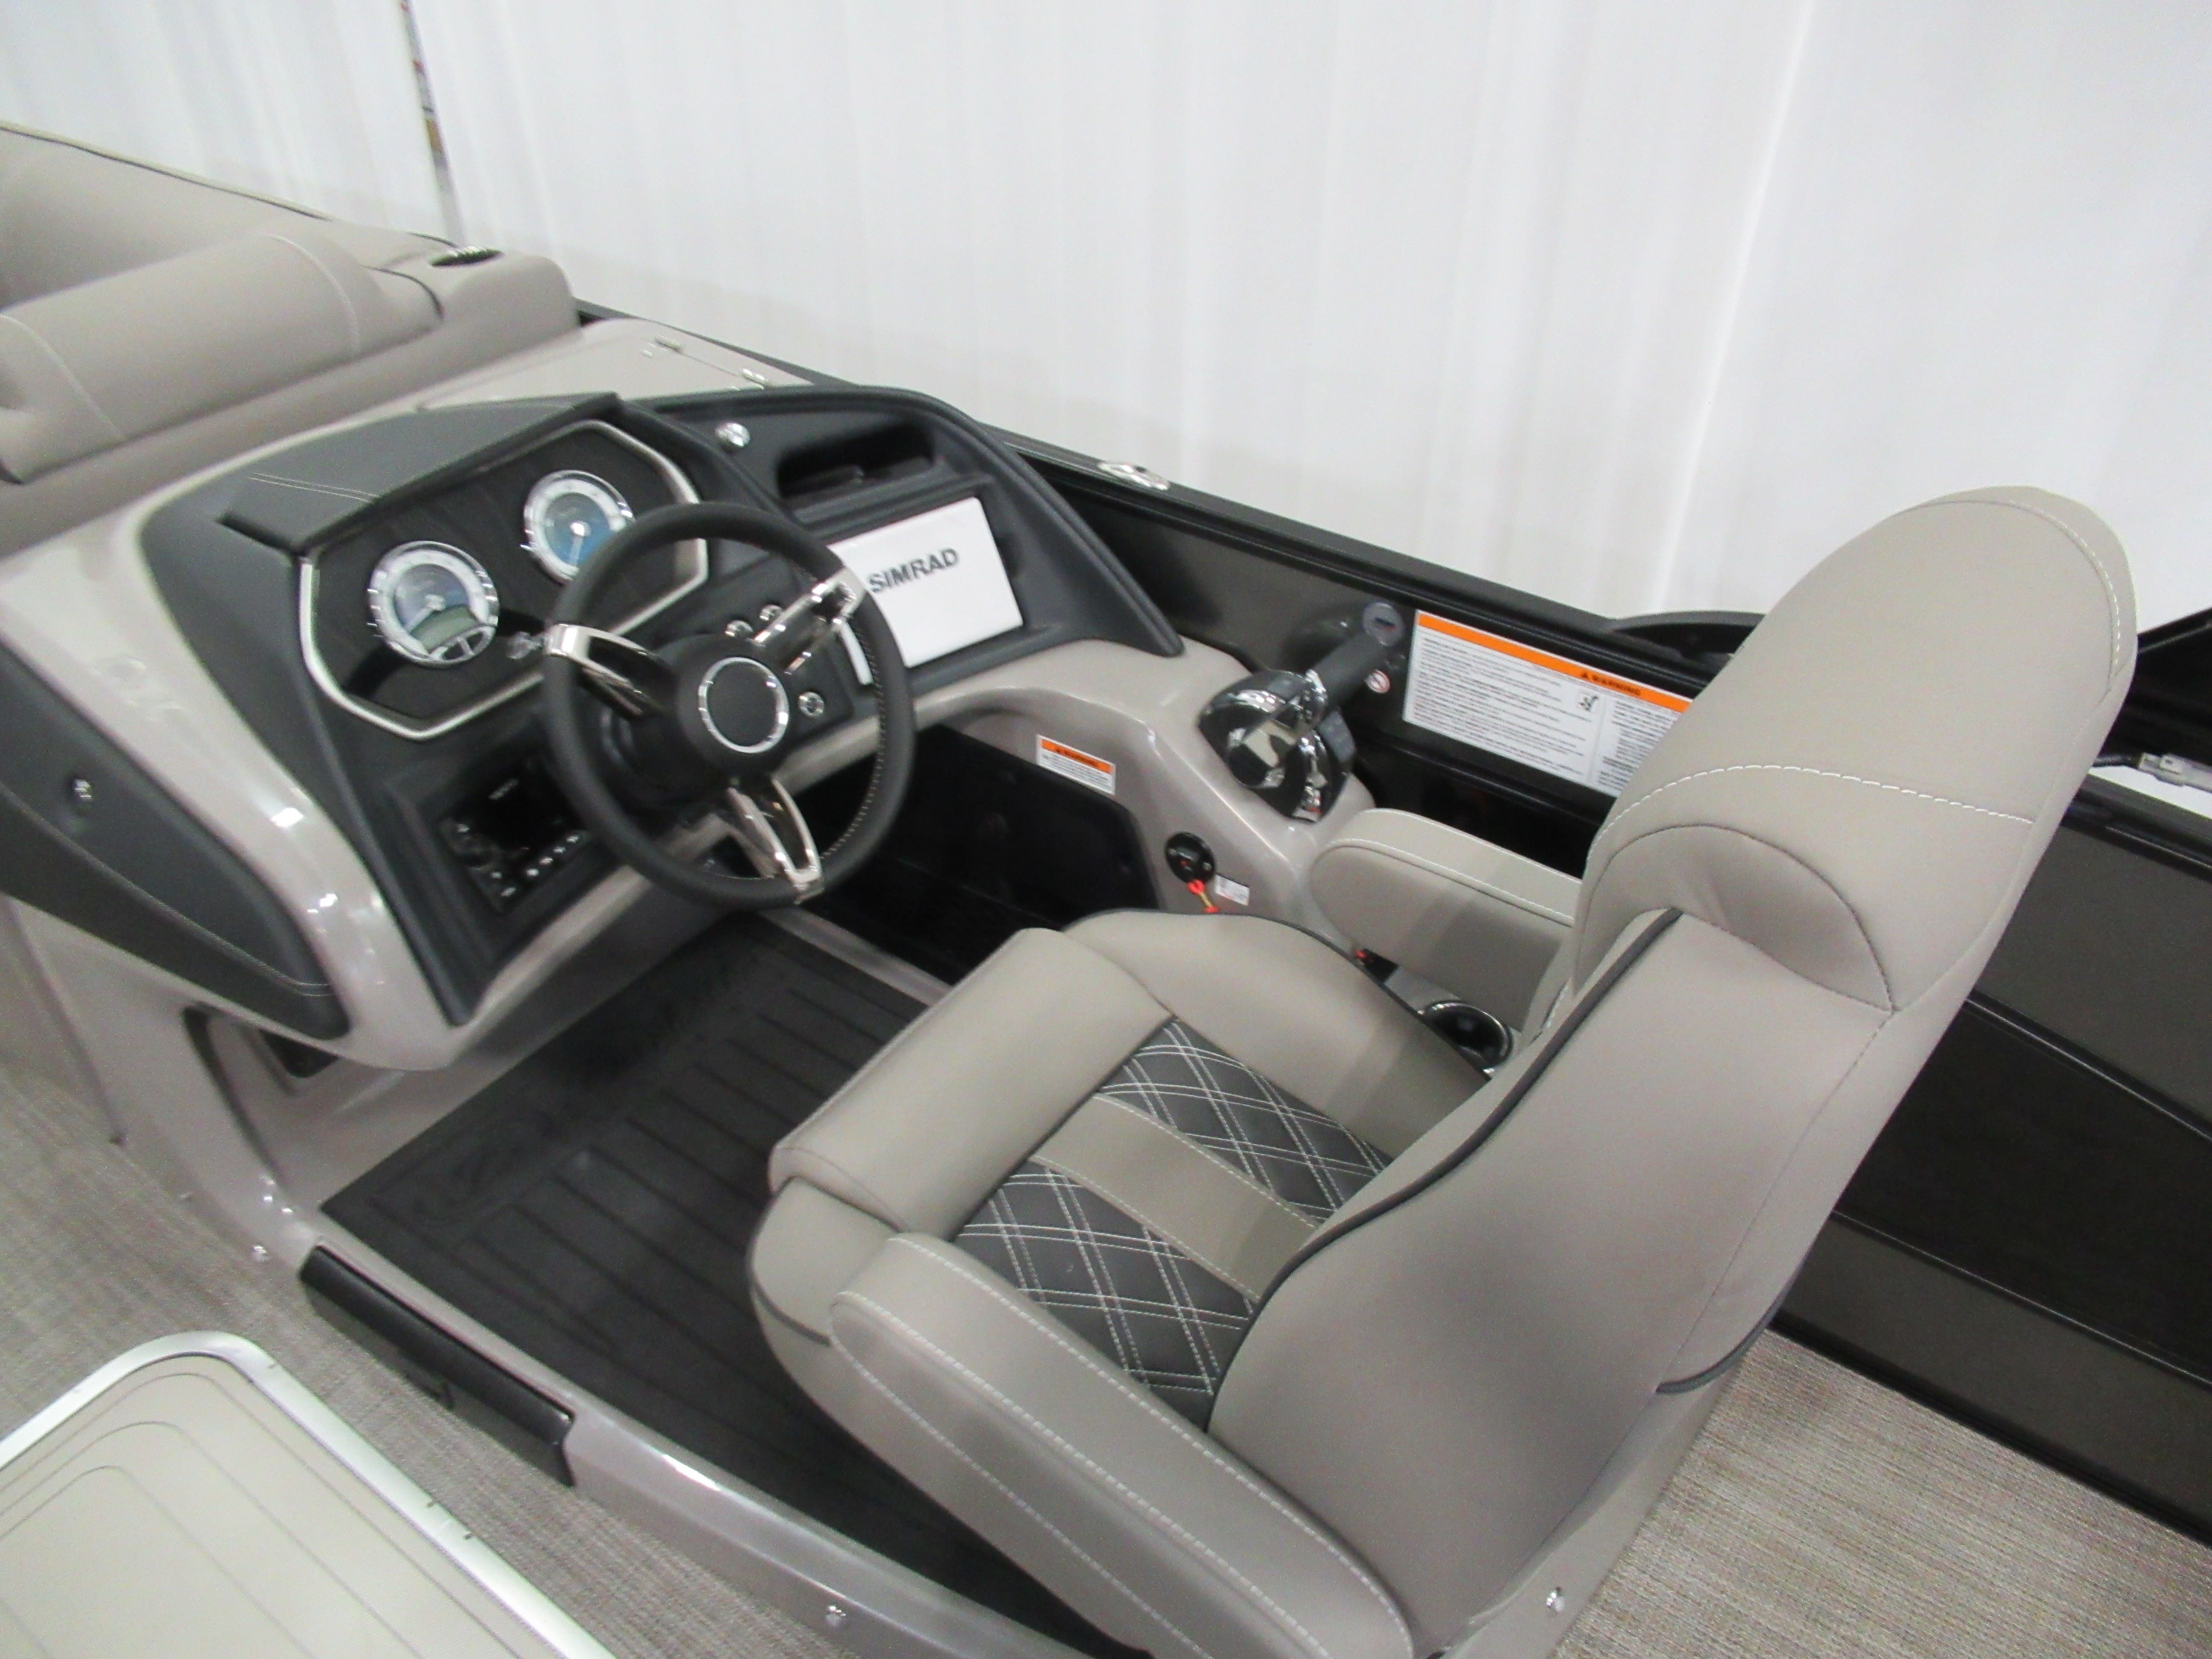 2021 Barletta boat for sale, model of the boat is L25UC & Image # 8 of 11